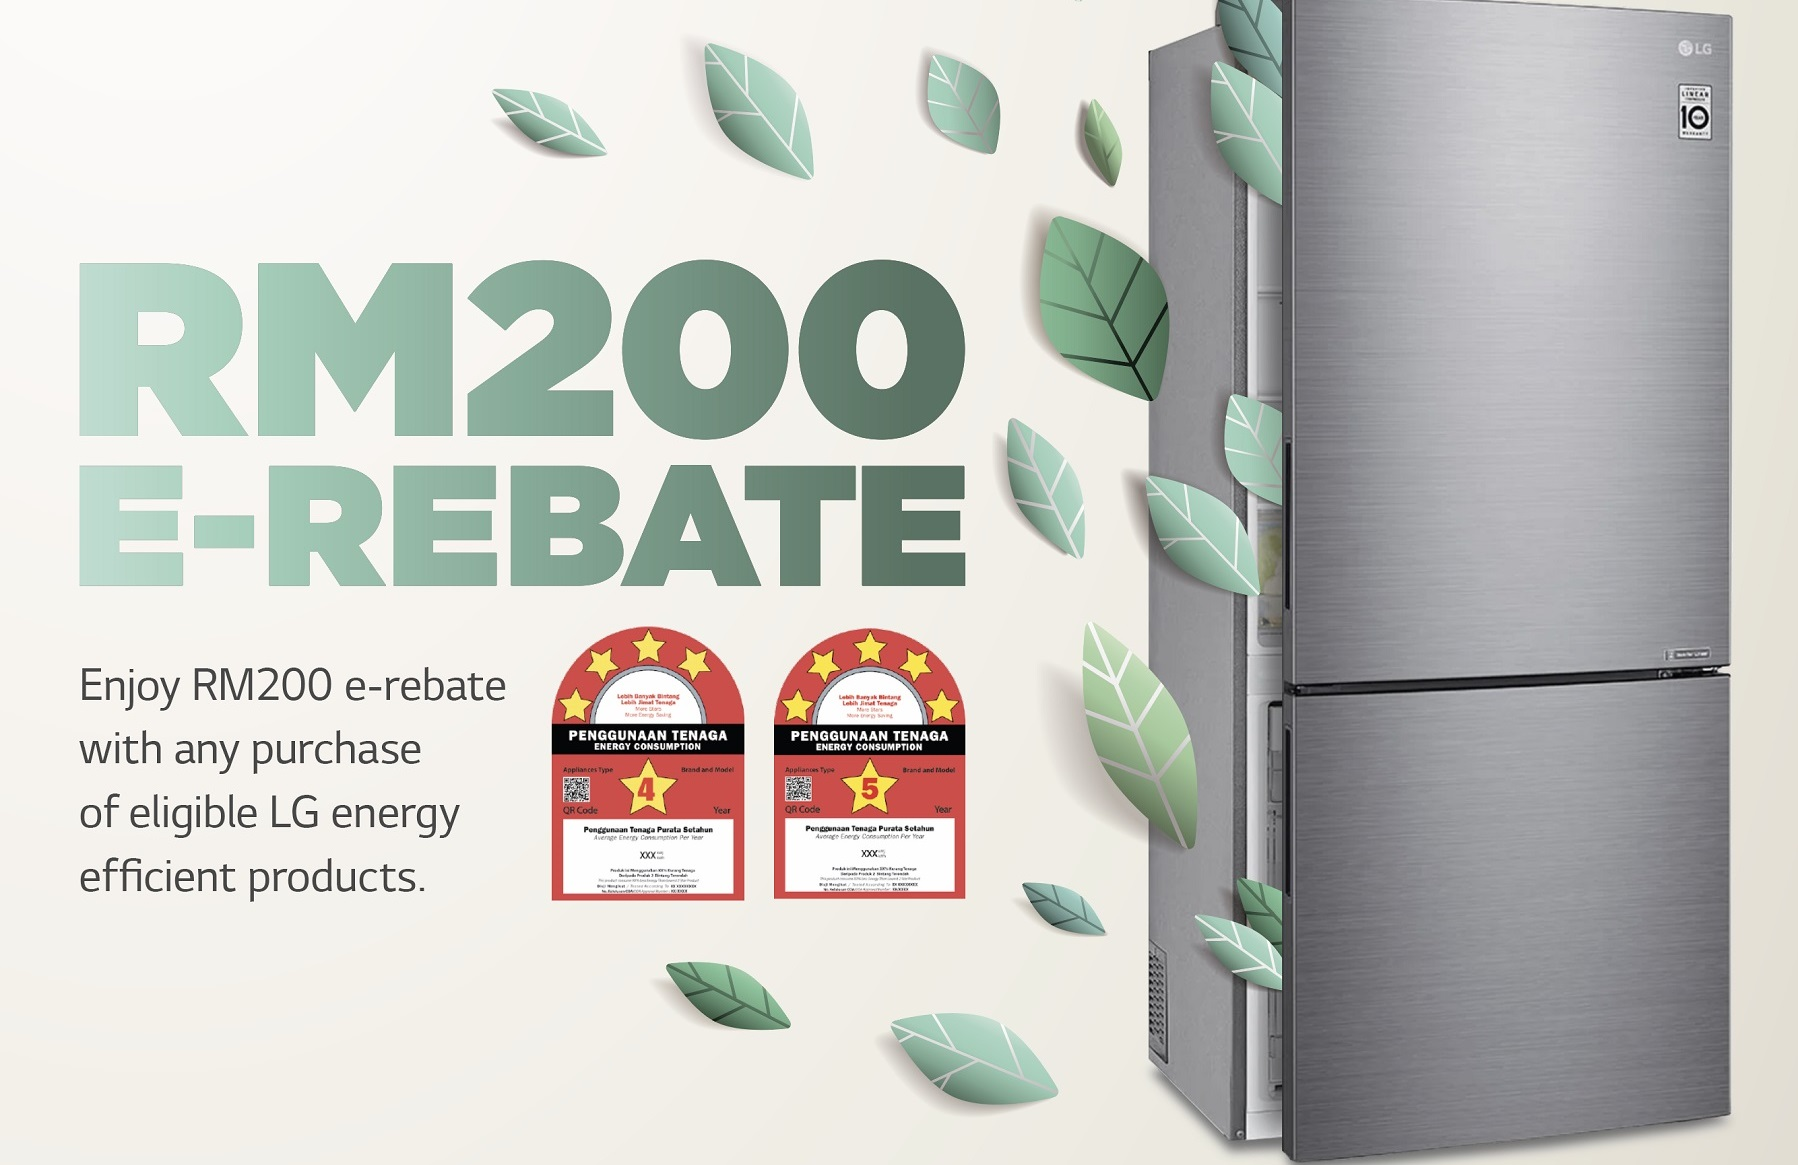 Get RM200 e-Rebate on New Energy-Saving LG Refrigerators